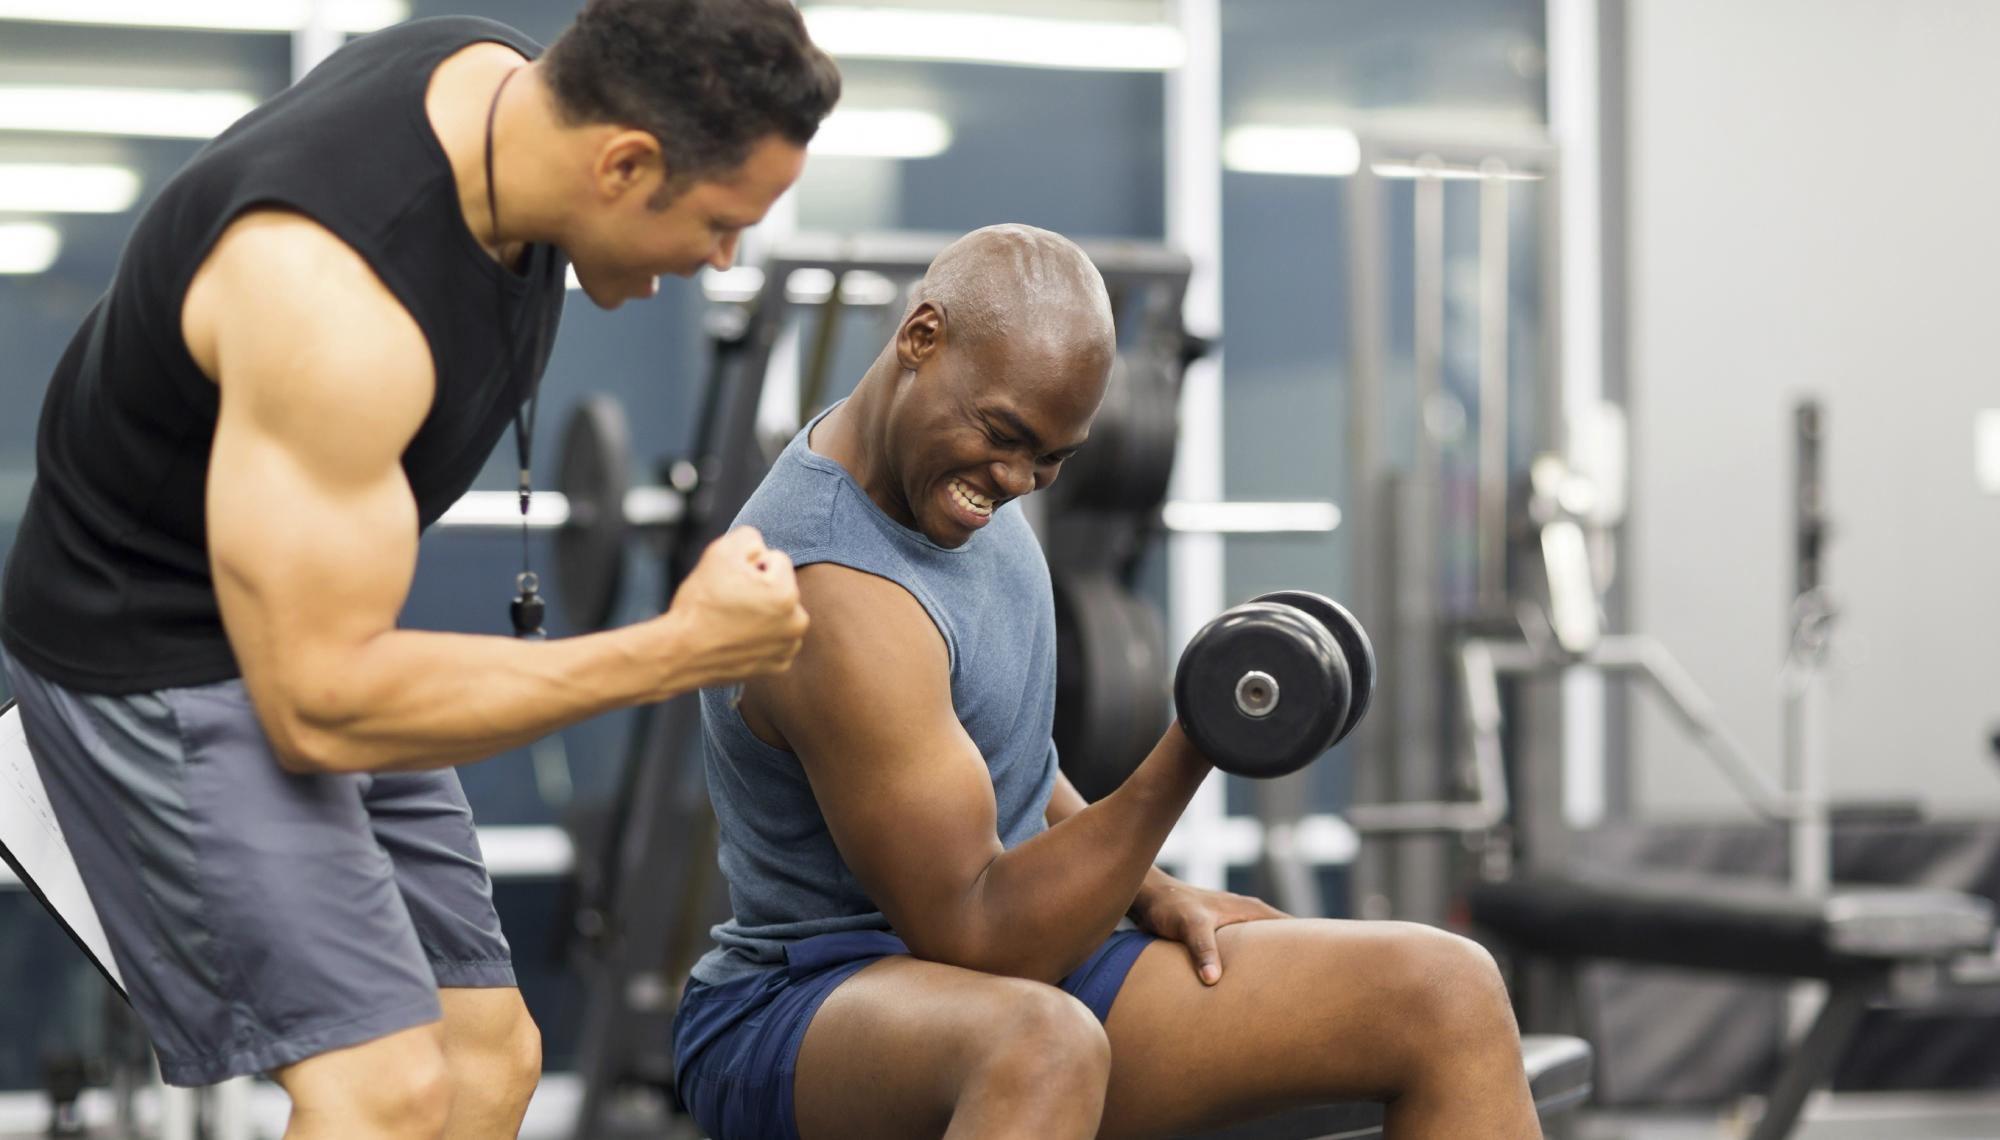 Top Tips to Increase Personal Training Revenue